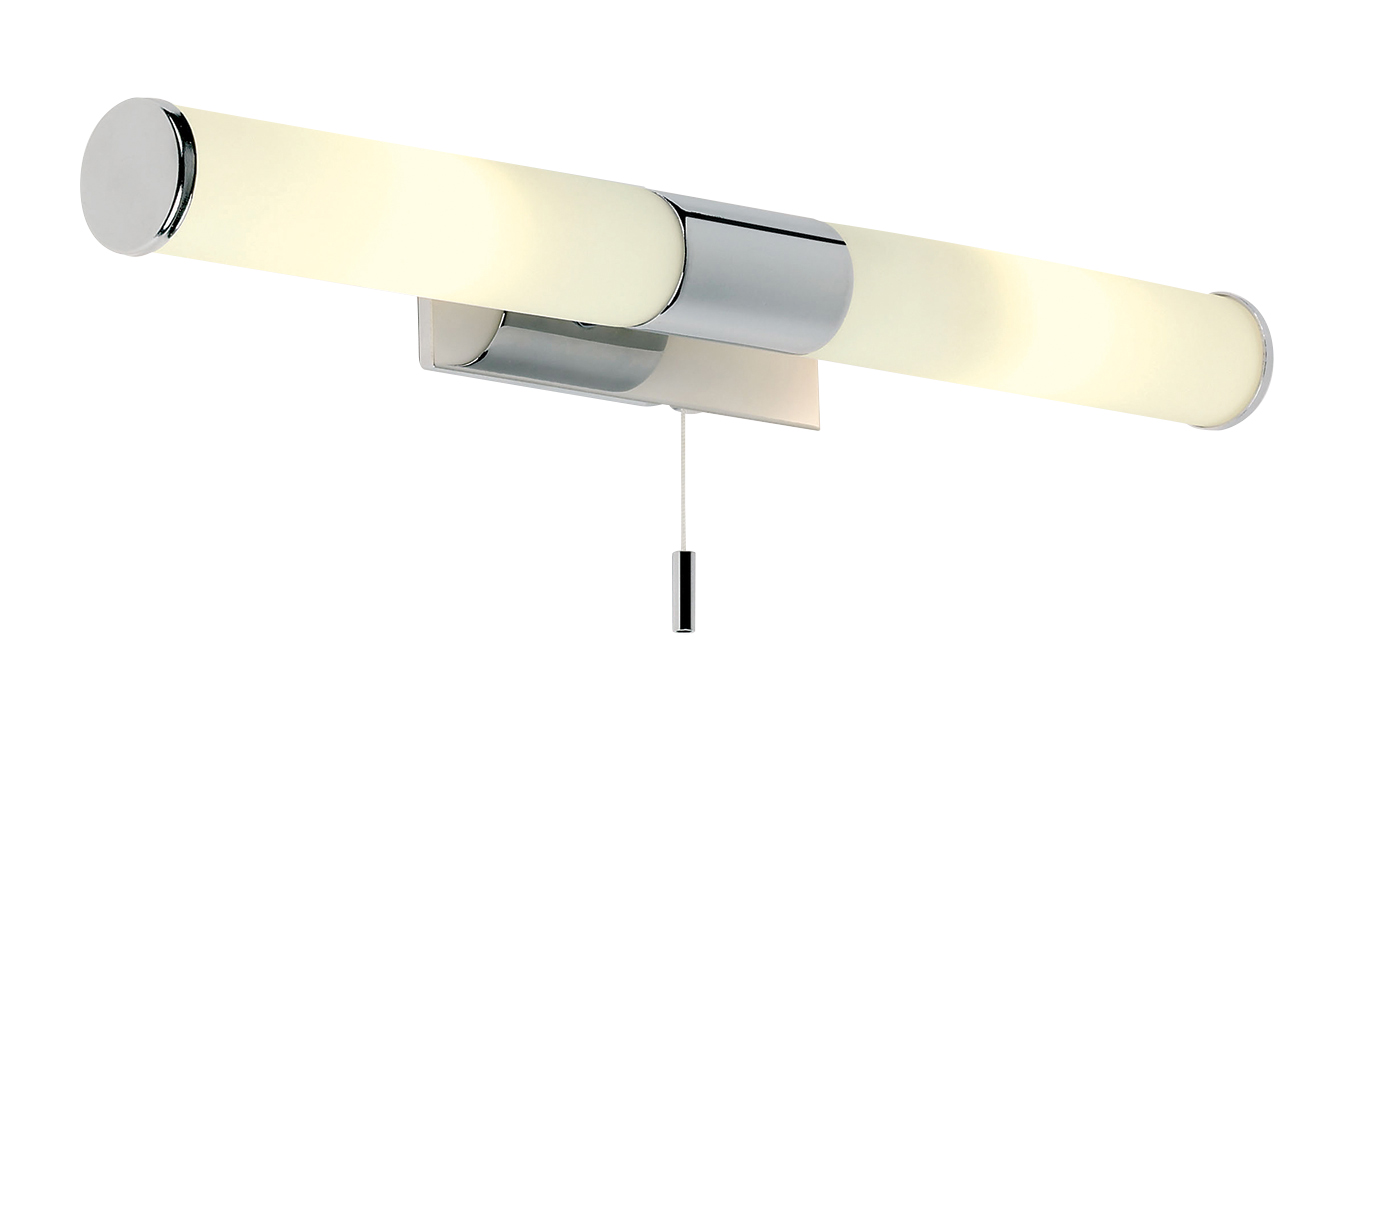 Endon Romford 2lt bathroom wall light IP44 25W Chrome & opal glass pull cord